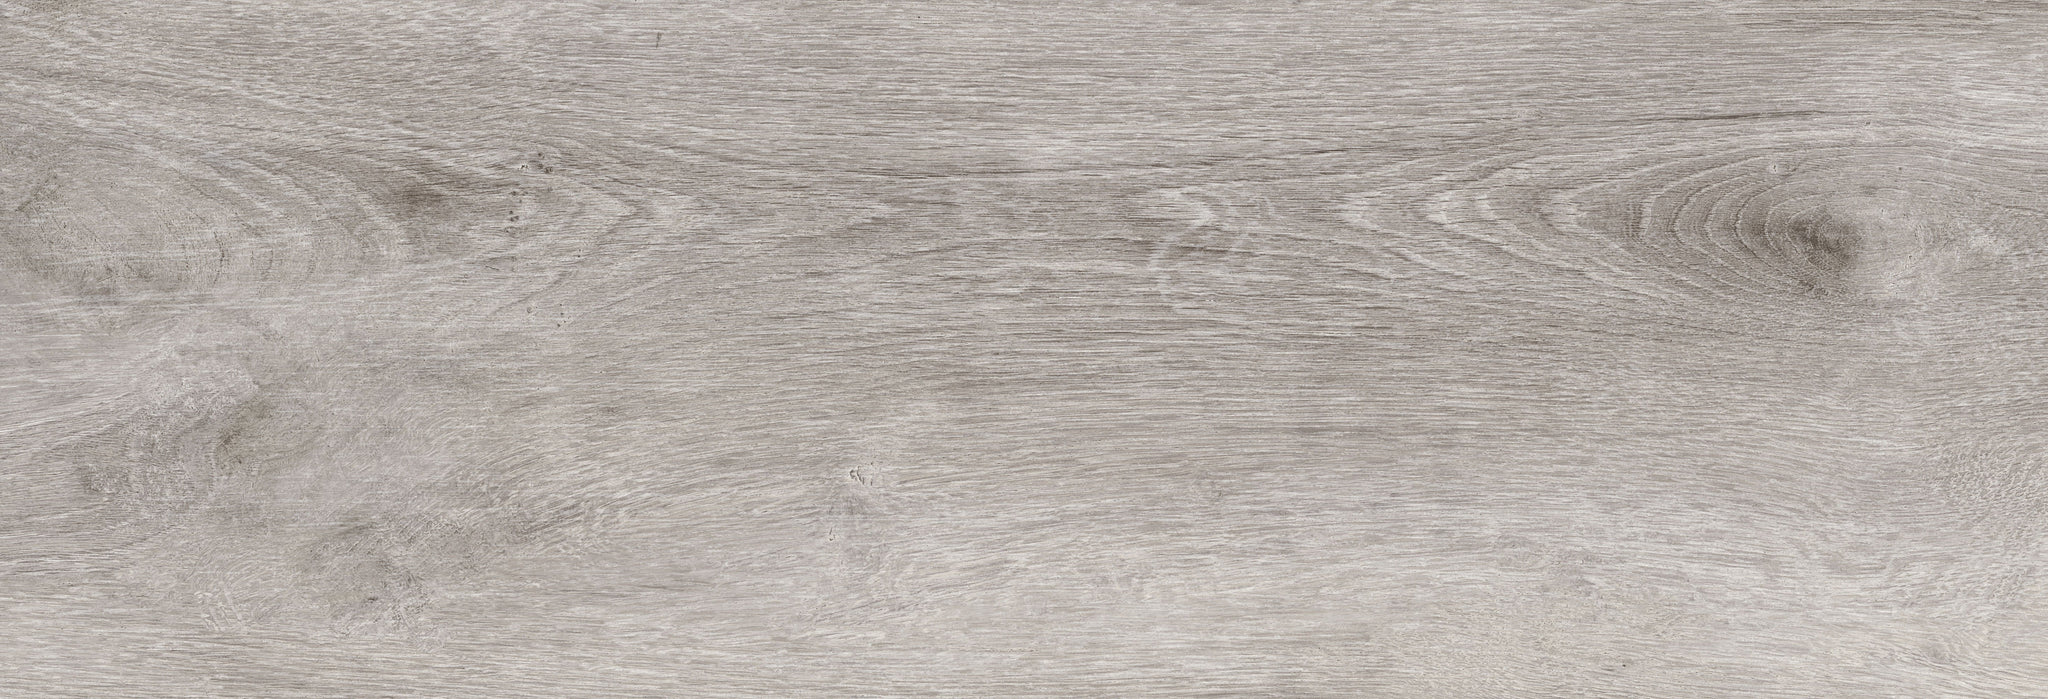 Albero Ceramic Tile Foresta